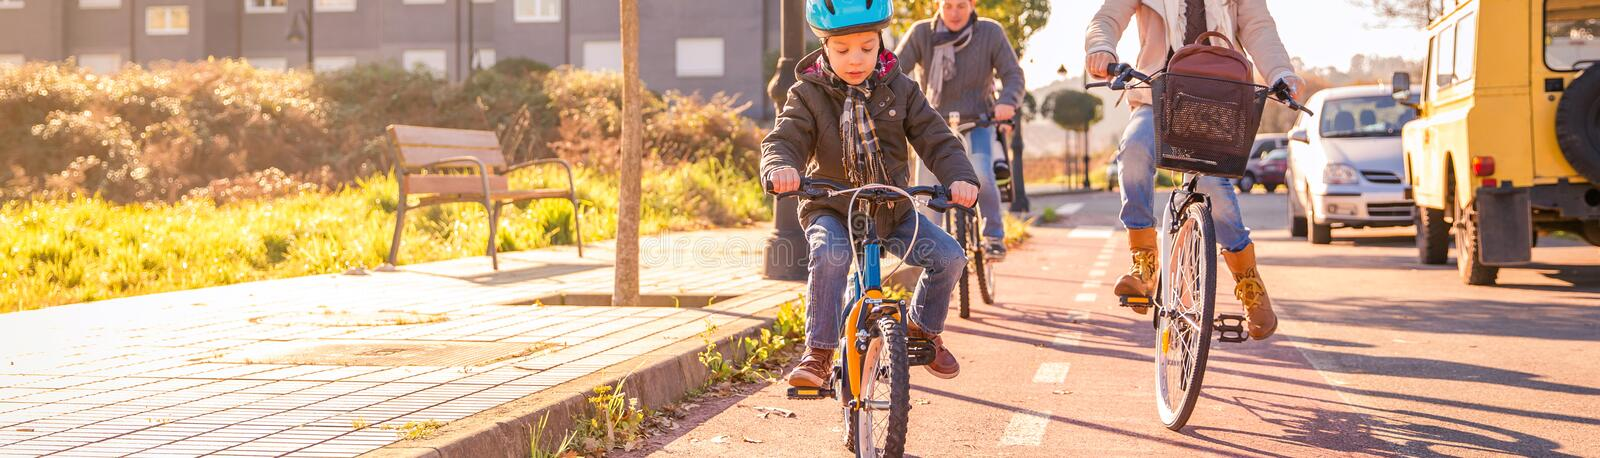 Family with child riding bicycles in the city royalty free stock photos